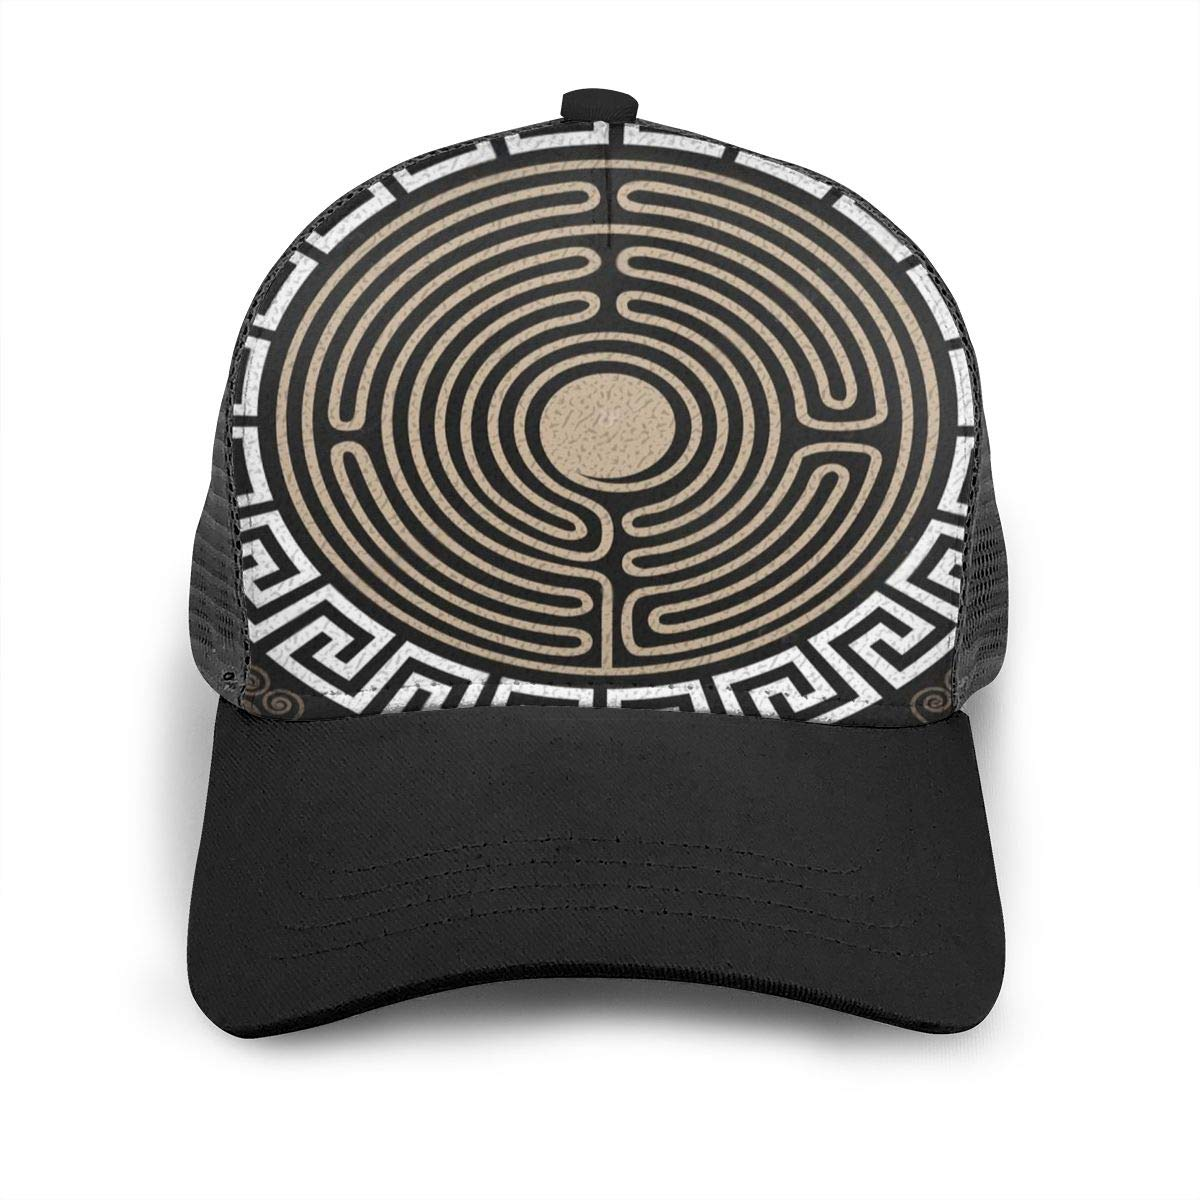 Fitted Snapback Baseball Cap for Unisex Mens Han Dynasty Decorative Lines Flat Baseball Cap